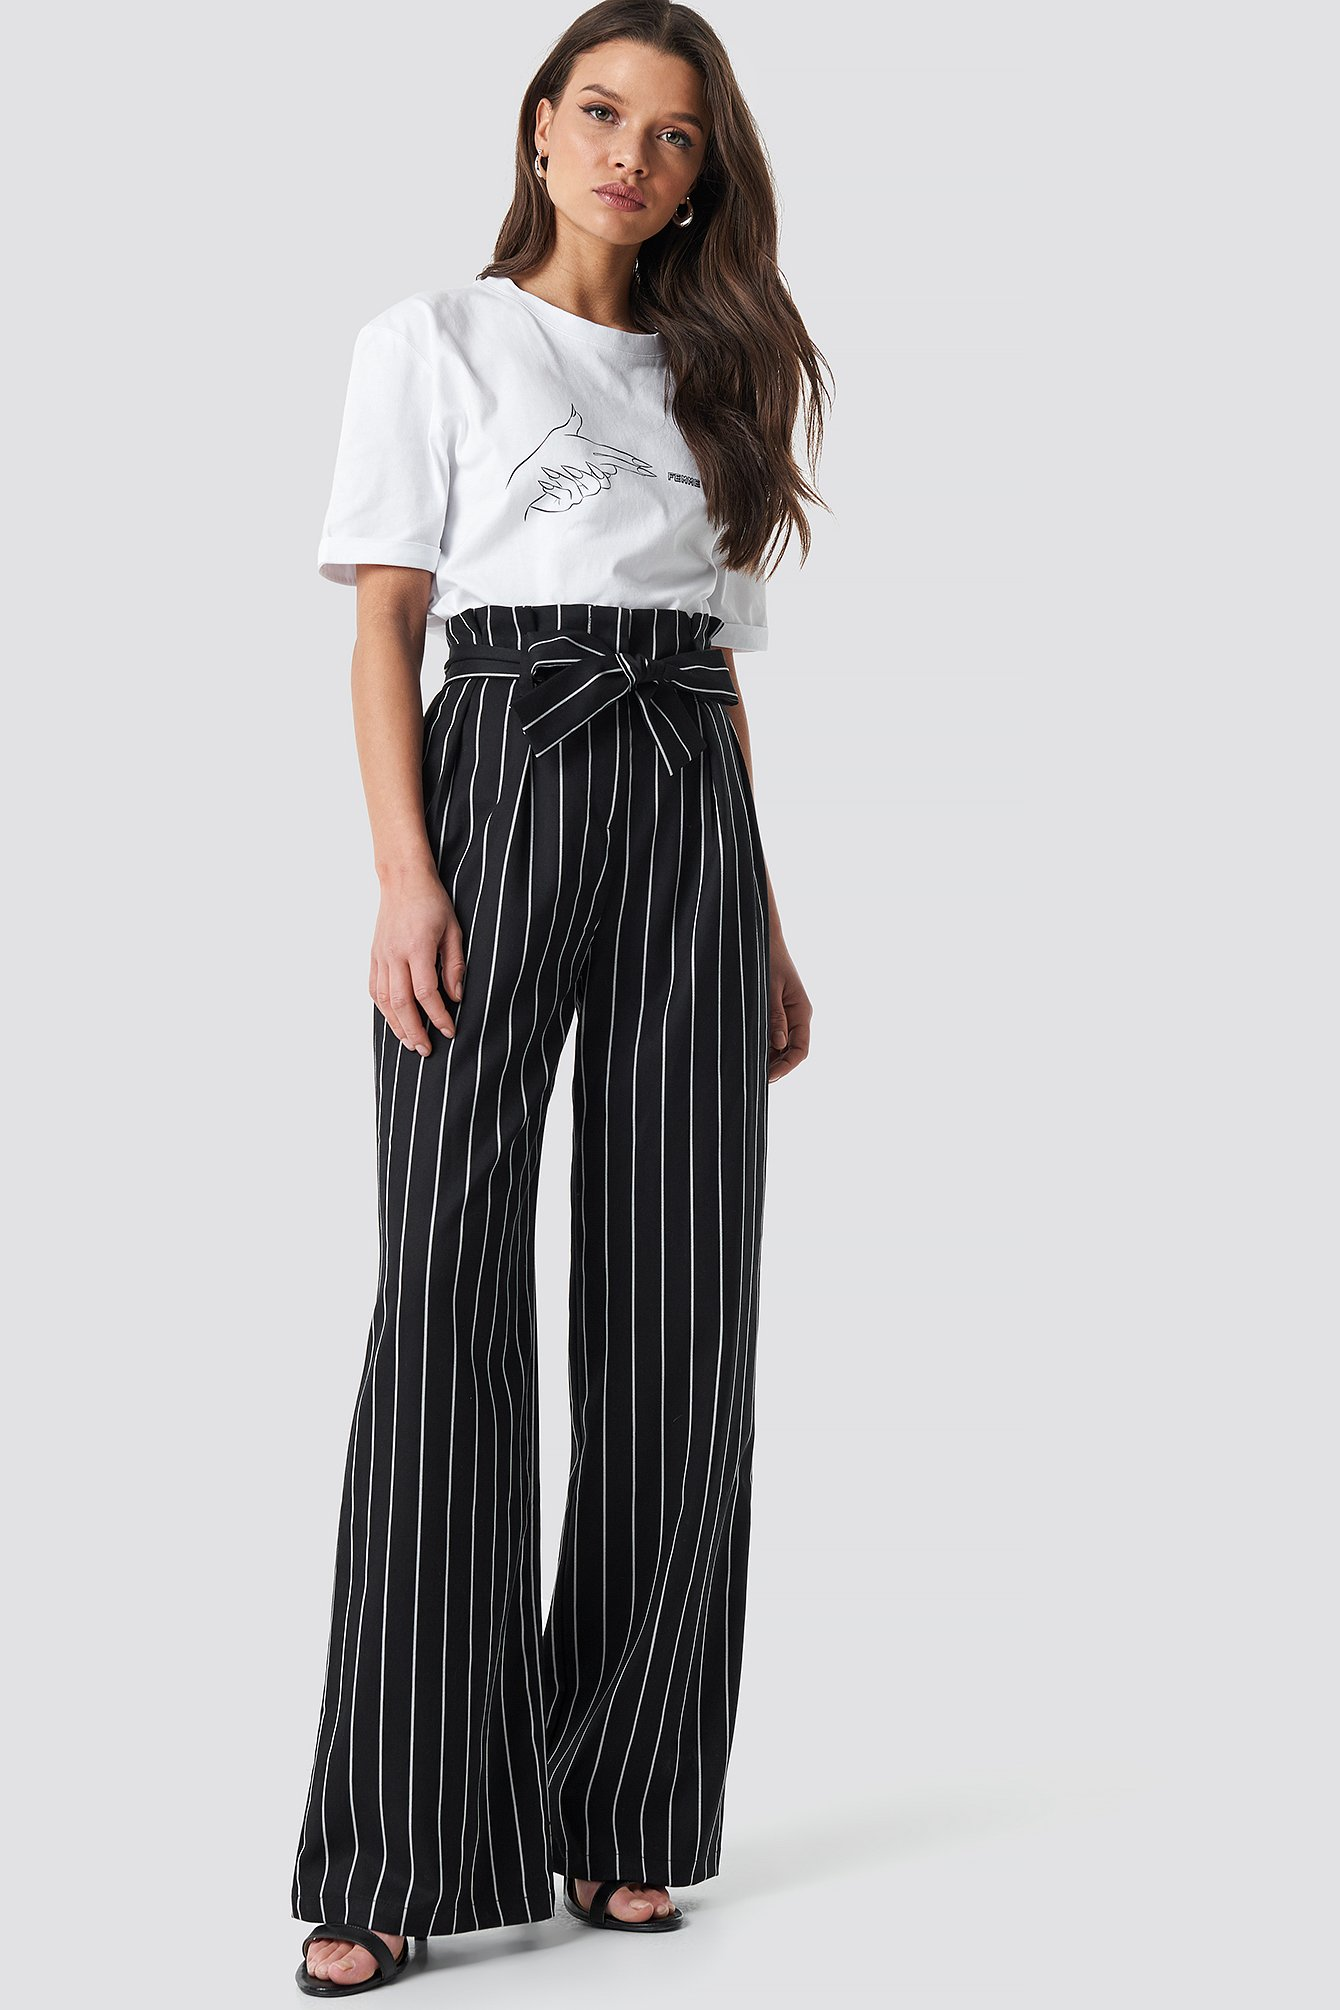 linn ahlborg x na-kd -  Striped Flare Pants - Black